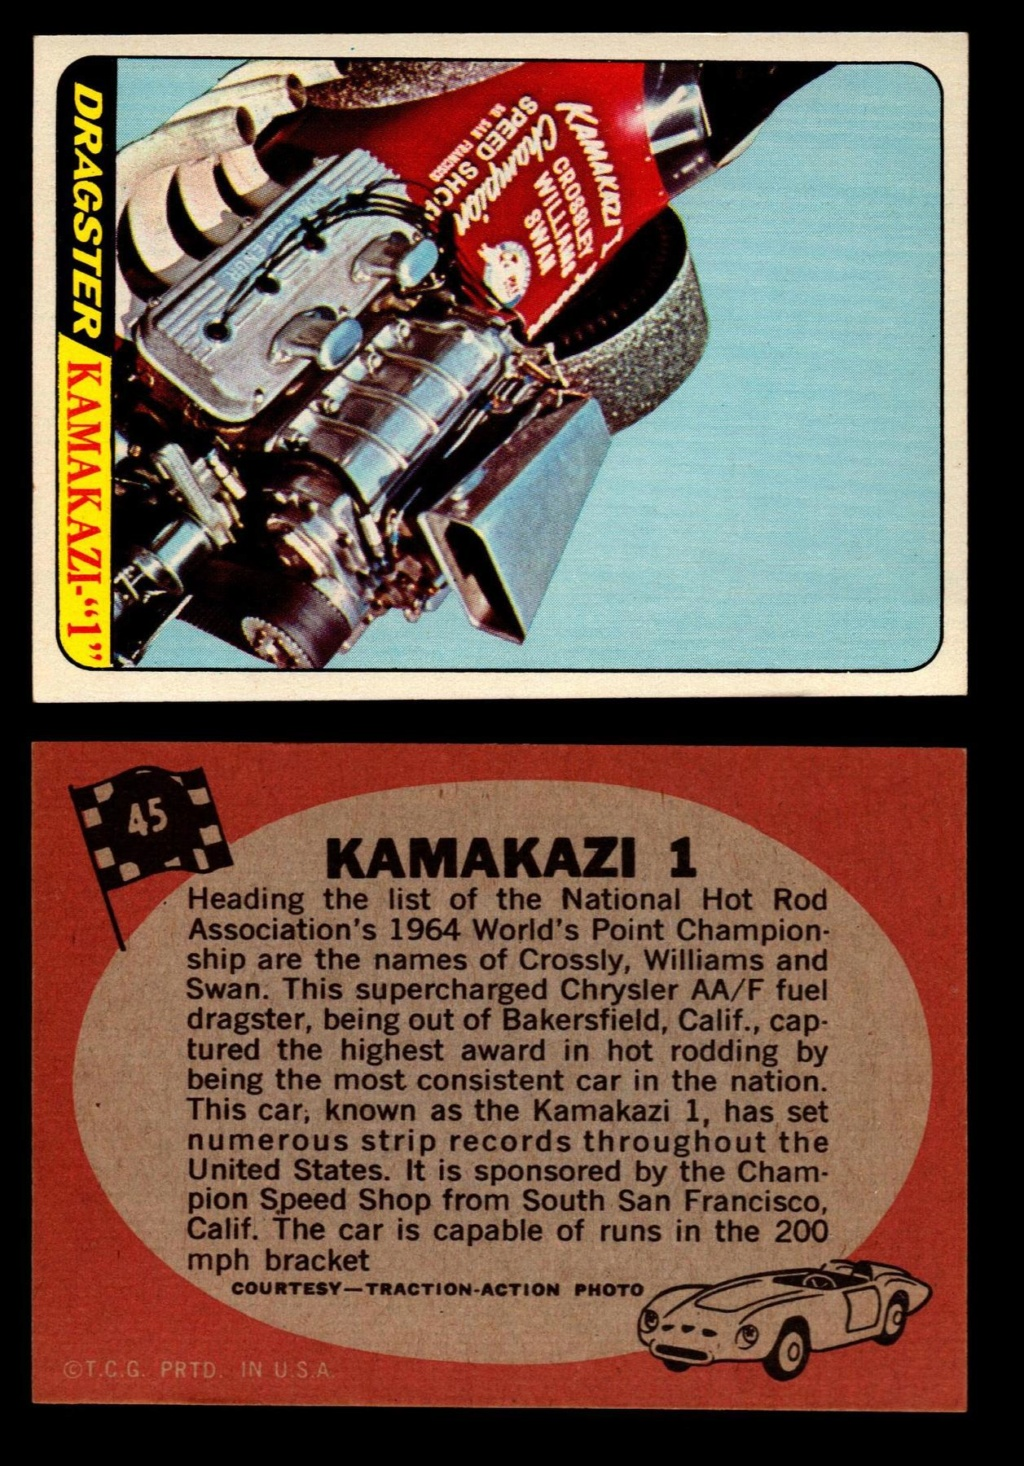 Hot Rods Topps - Vintage Trading Cards 1968 - Custom car - Dragster - Racer - Dream car - Barris Kustom City - Ed Roth Darrill Starbird, Gene Winfield, Bill Cuchenberry - Page 2 45_3d310